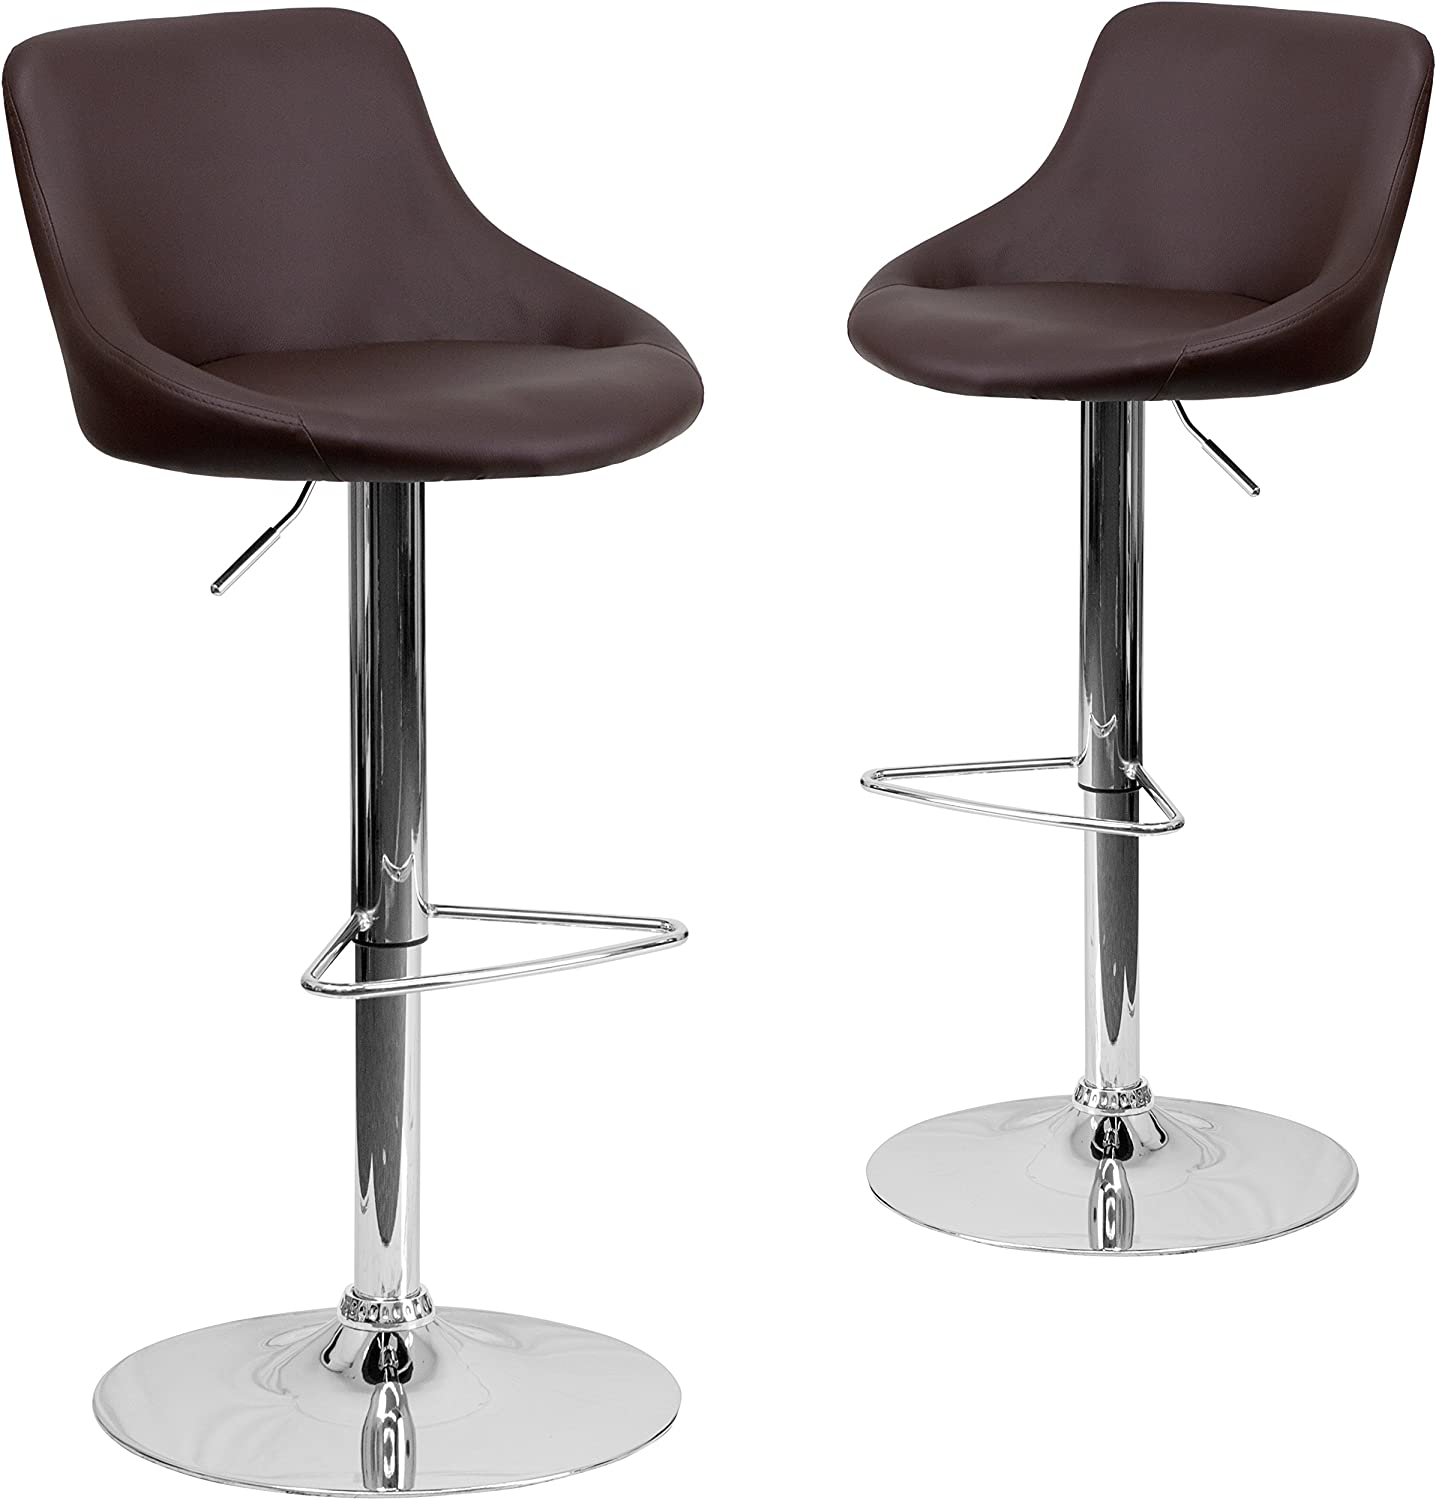 Flash Furniture 2-CH-82028-MOD-BRN-GG 2-Pack Contemporary Vinyl Bucket Seat Adjustable Height Bar Stool with Chrome Base, 41.5-Inch, Brown